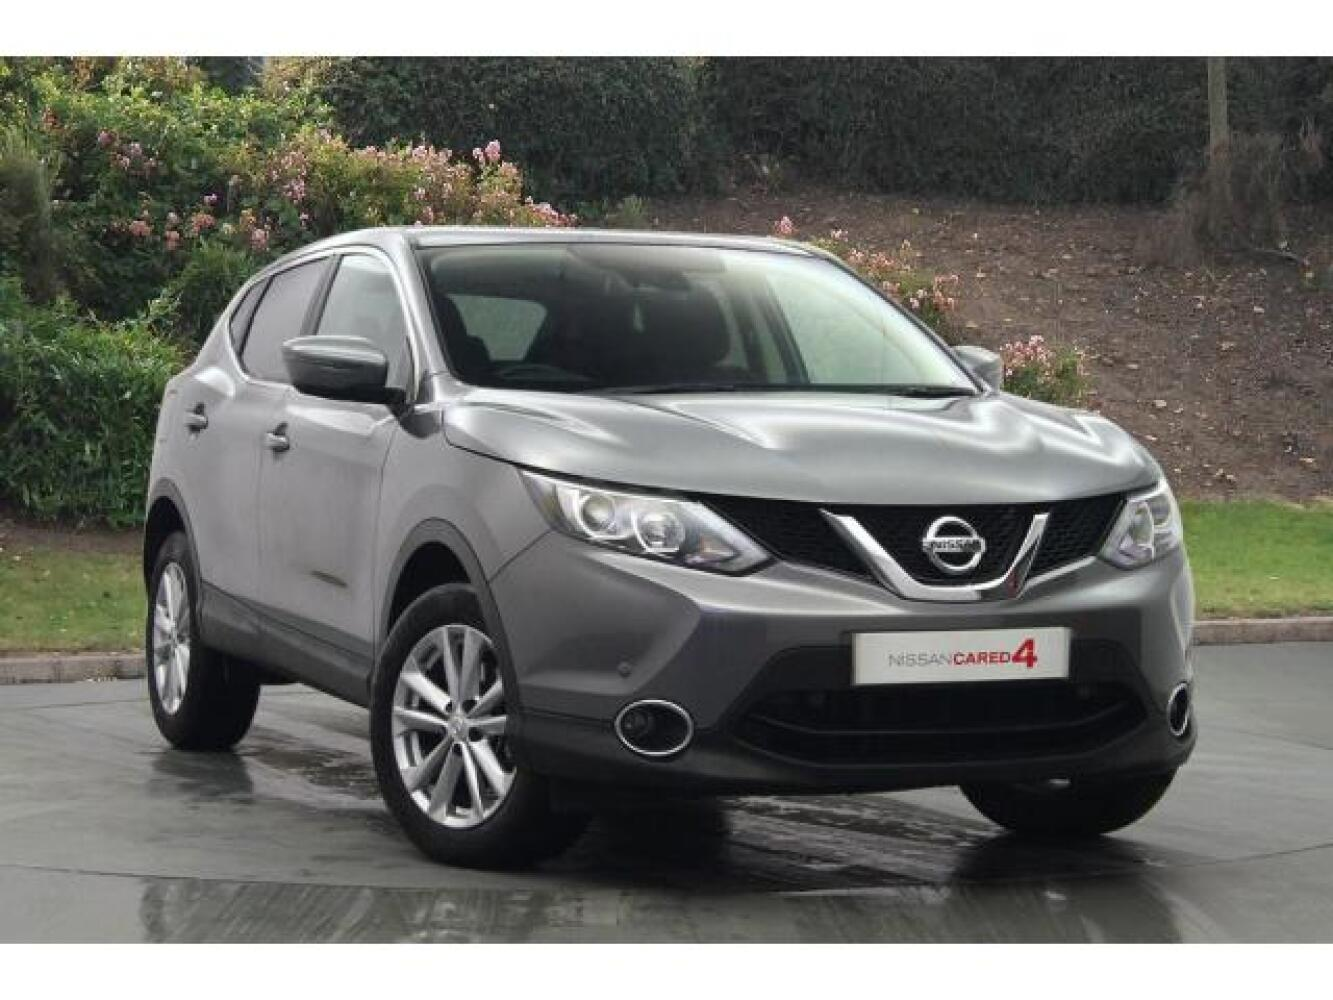 used nissan qashqai 1 5 dci acenta premium 5dr diesel hatchback for sale newcastle infiniti. Black Bedroom Furniture Sets. Home Design Ideas